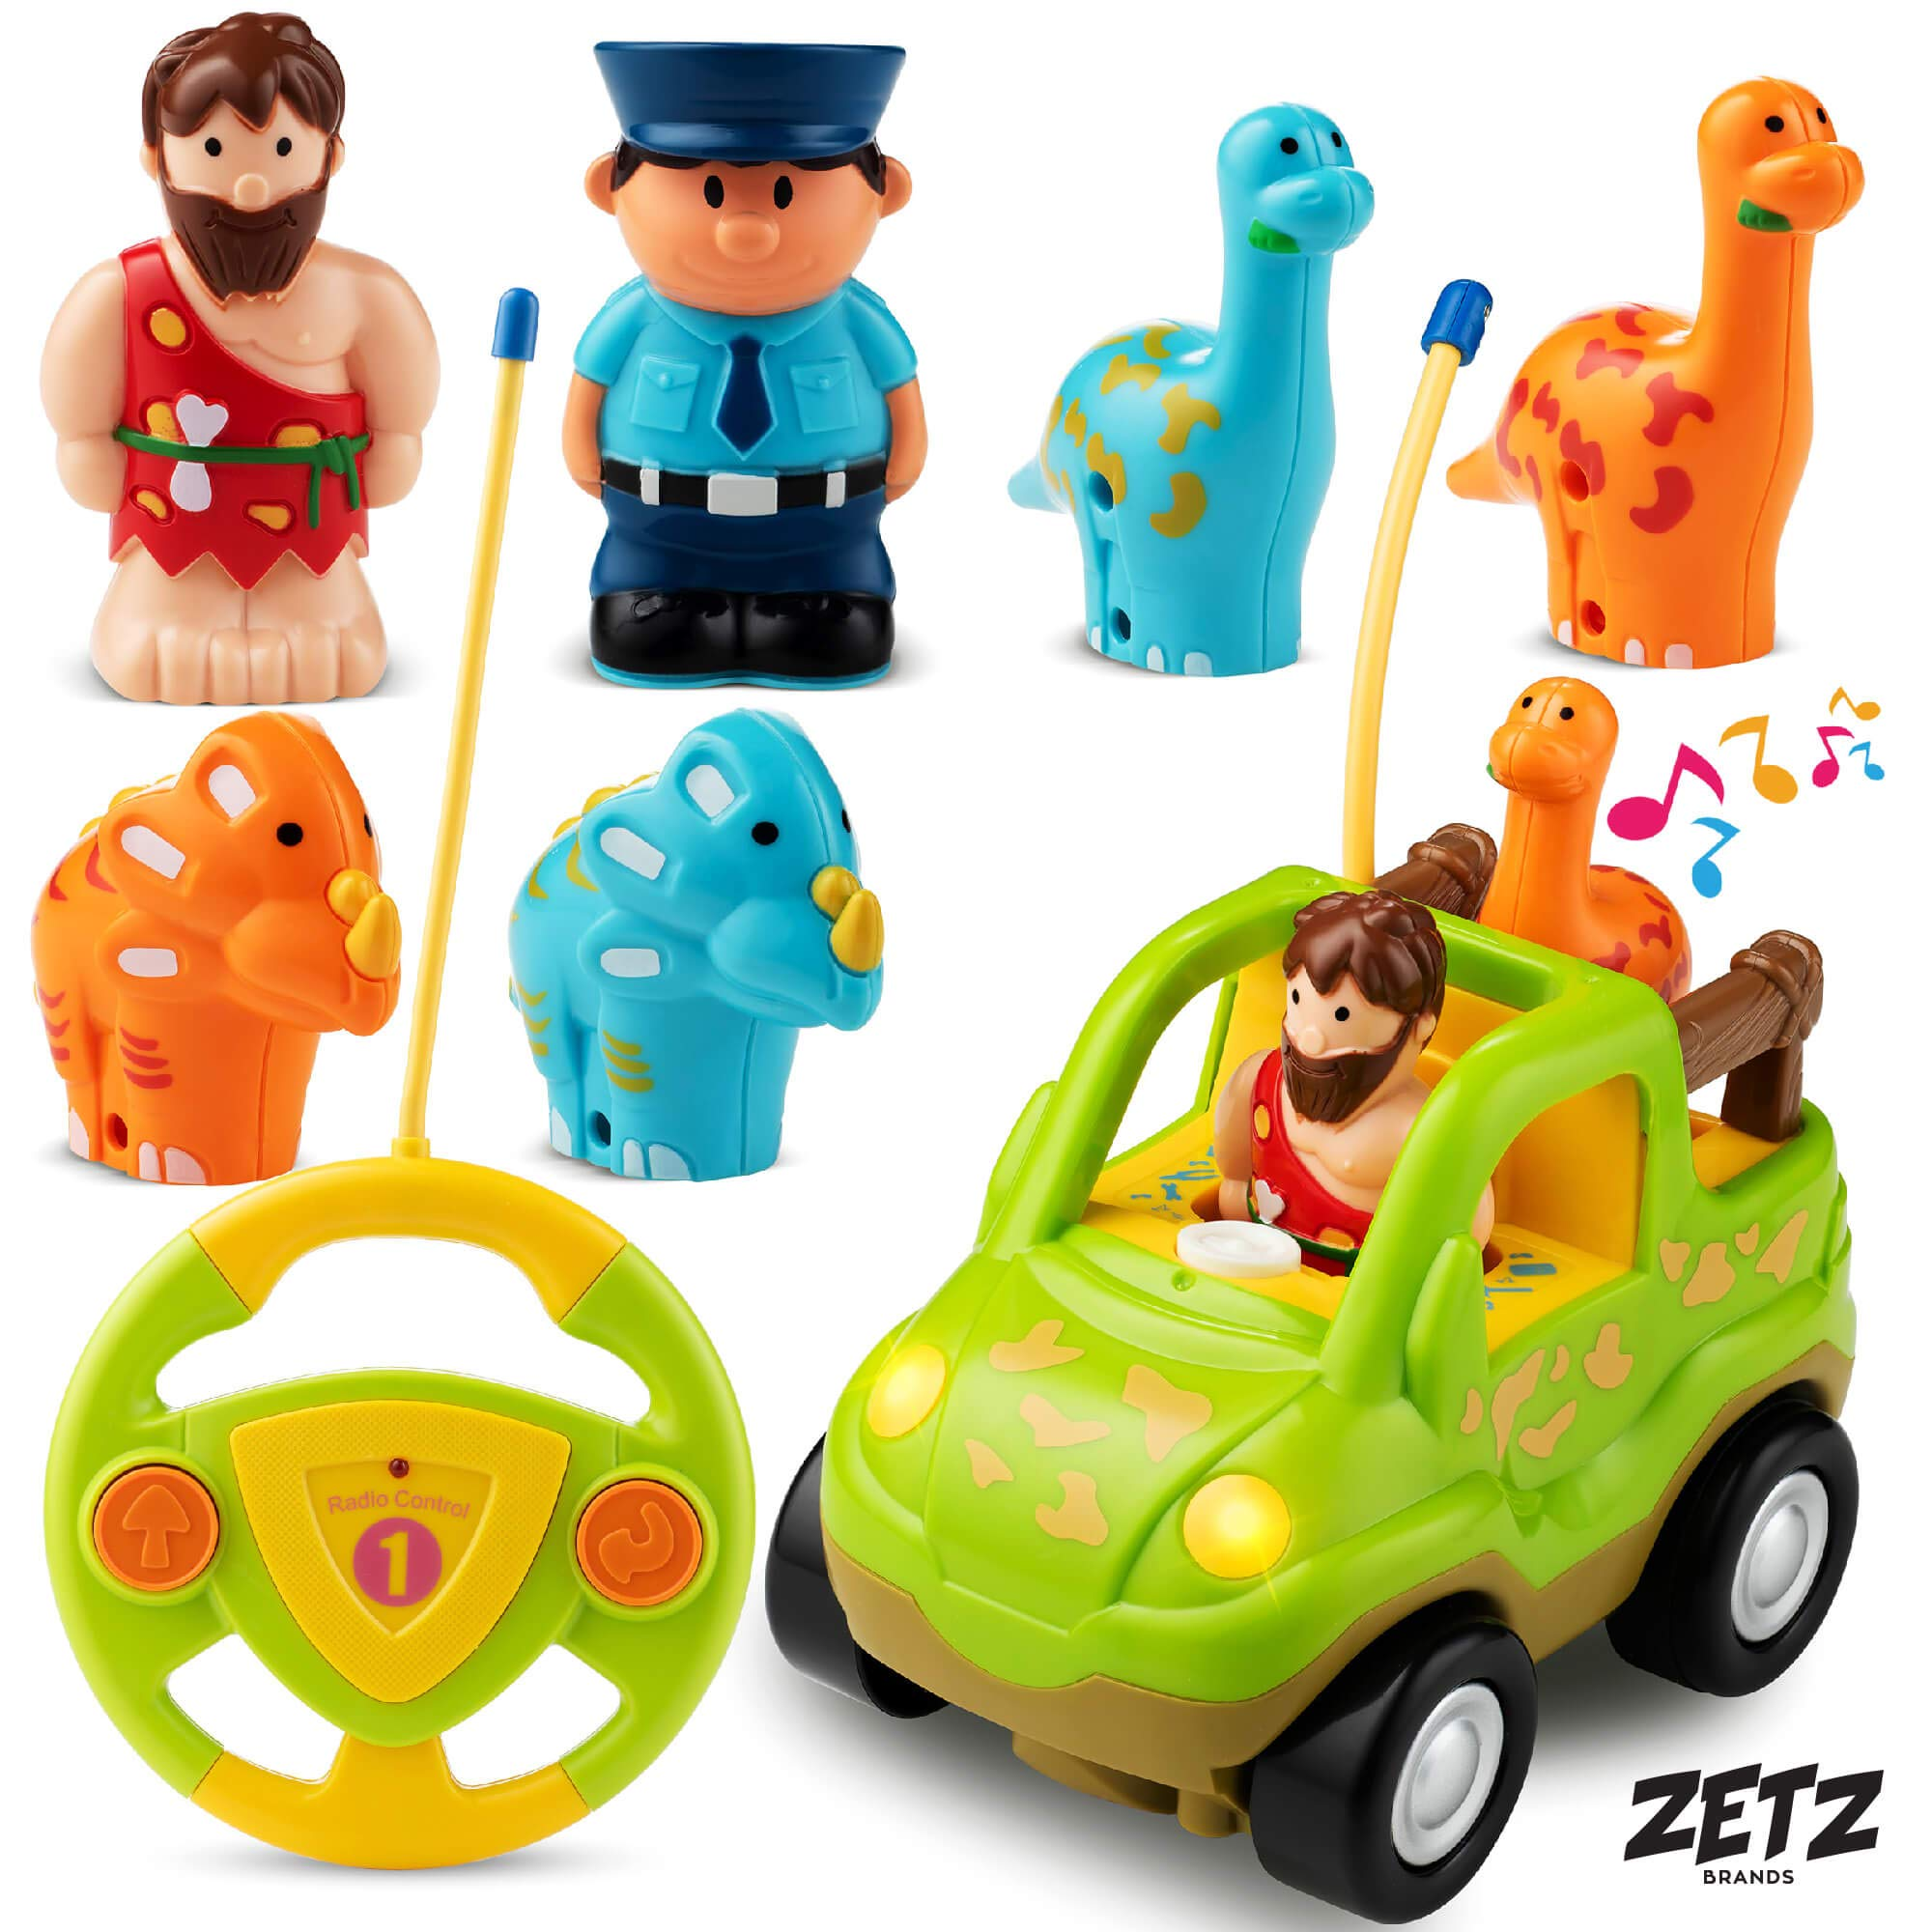 Remote Control Car Dino Toys Set - with Dinosaur Figures, Watchman &  Caveman - Includes 4 Dinosaur Toys for 3 Year Olds & Up | RC Cars for Boys